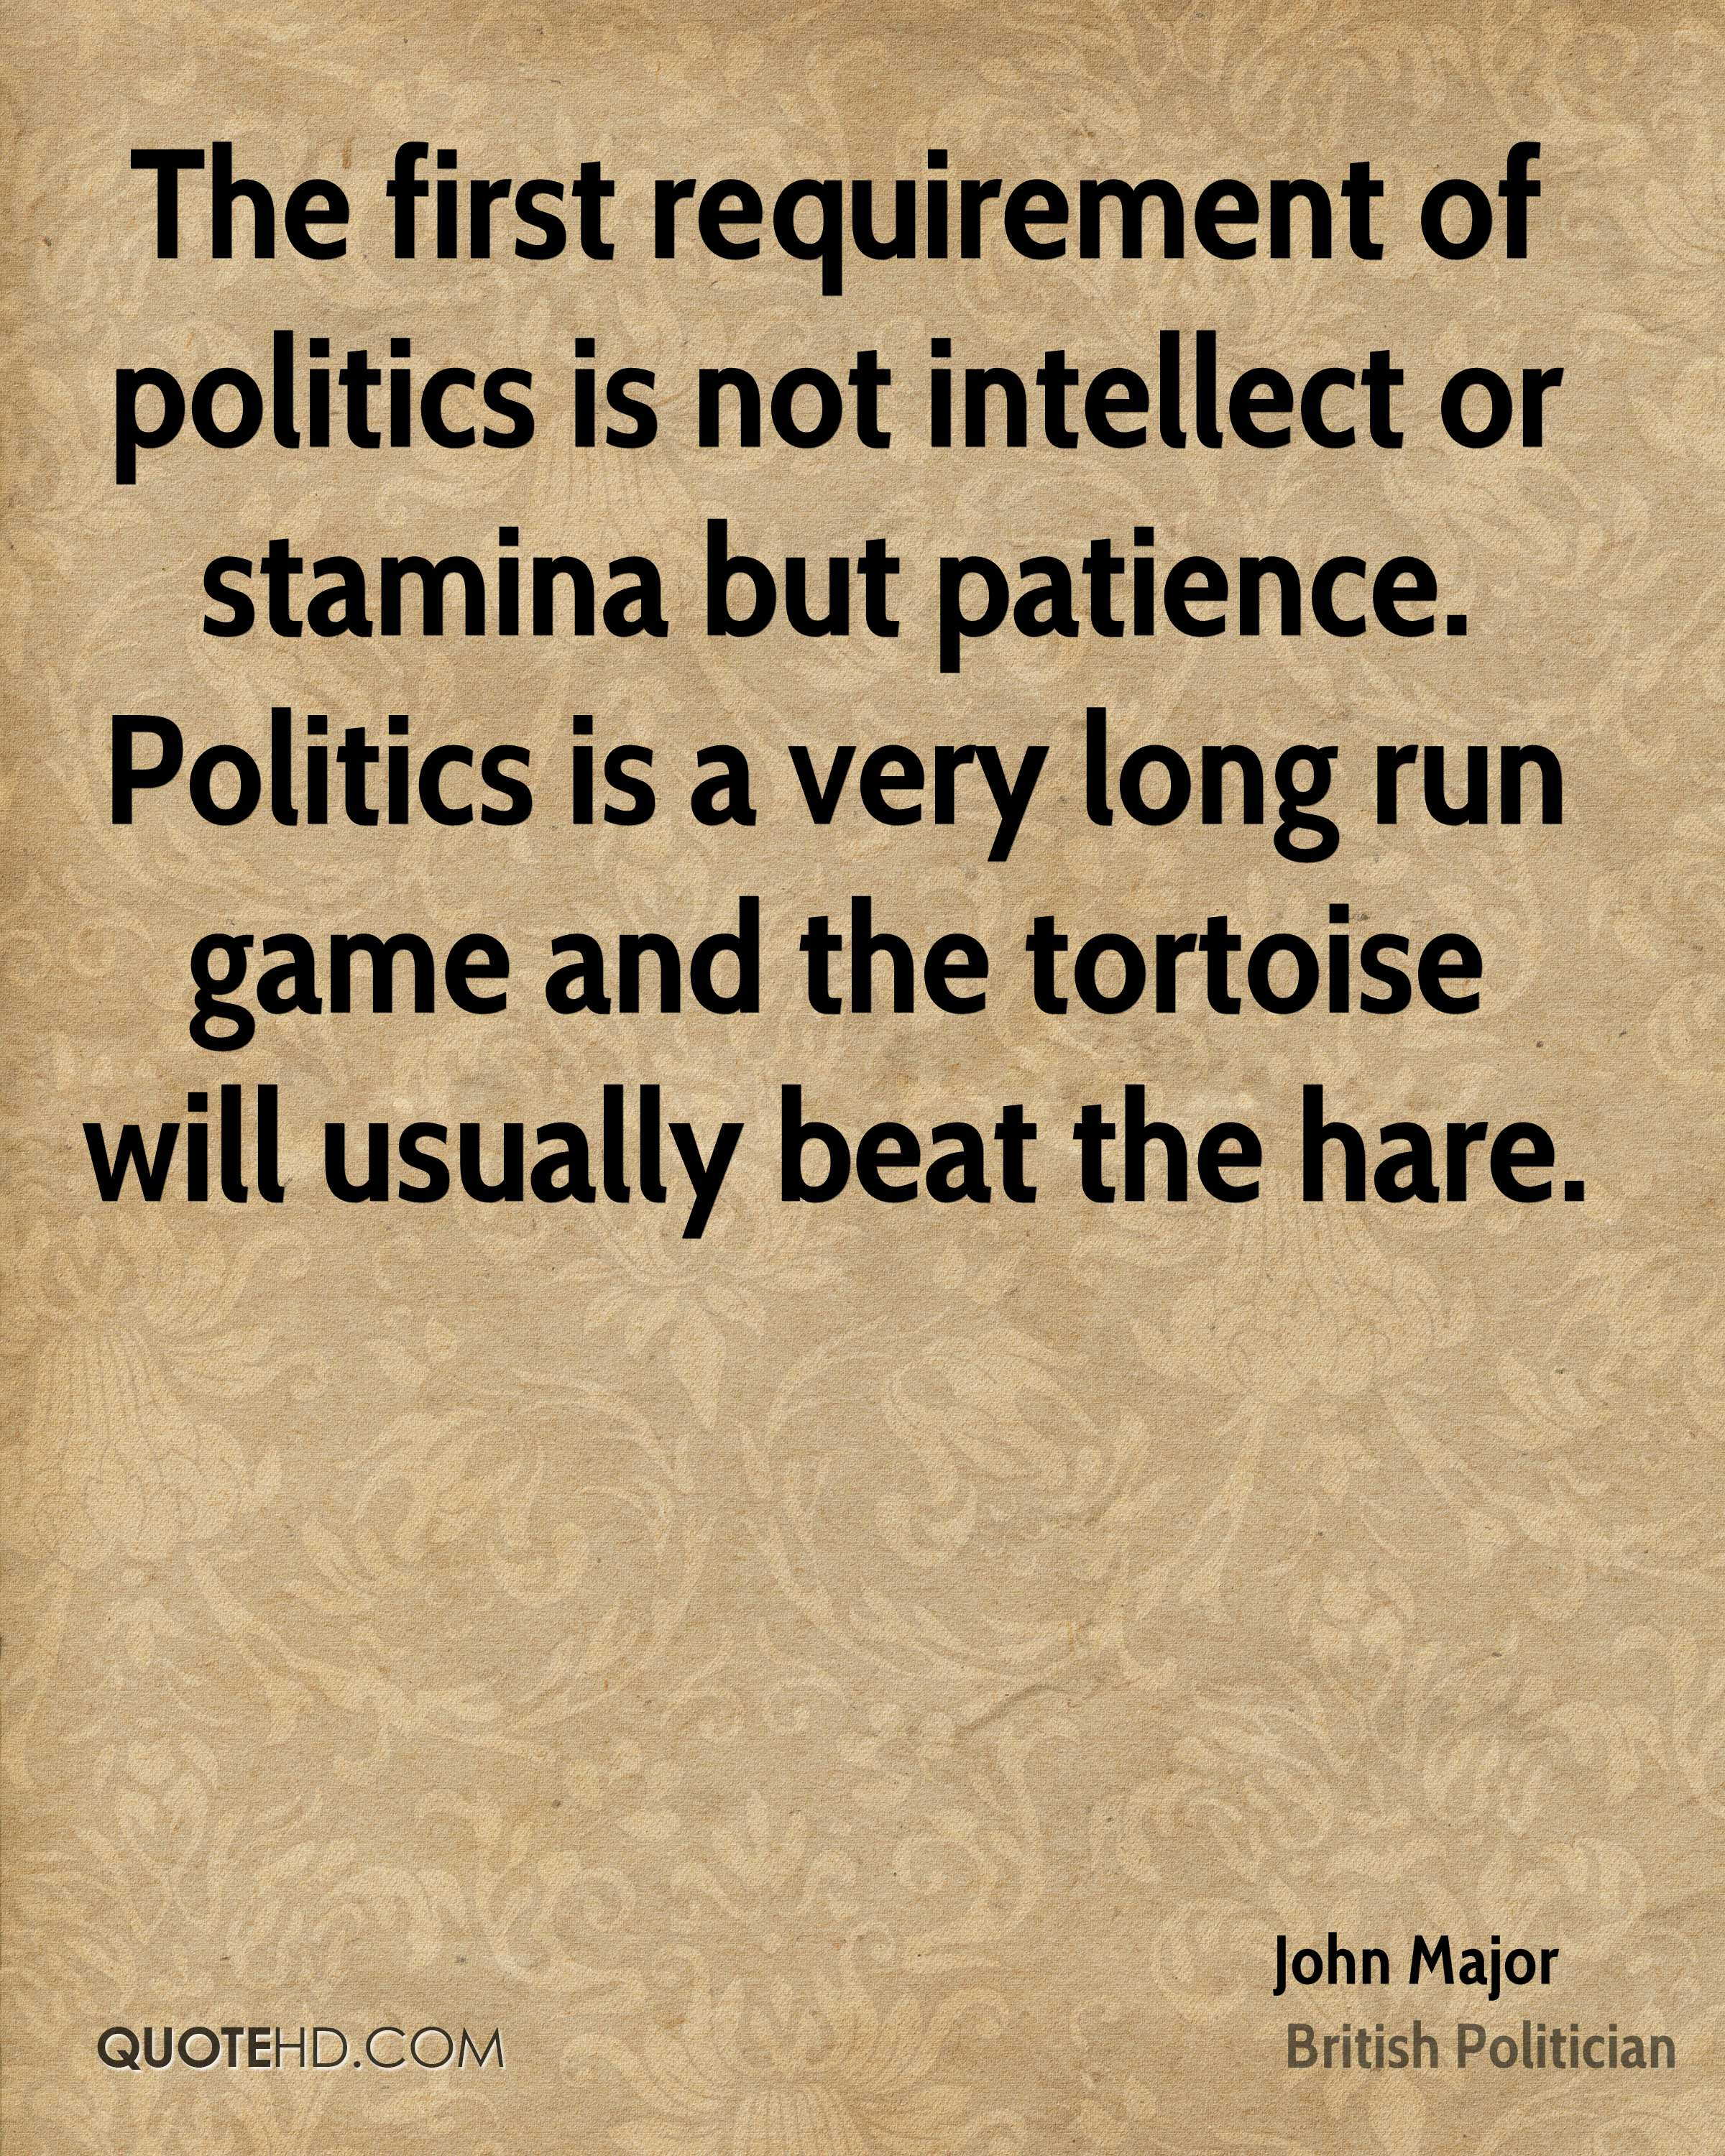 The first requirement of politics is not intellect or stamina but patience. Politics is a very long run game and the tortoise will usually beat the hare.